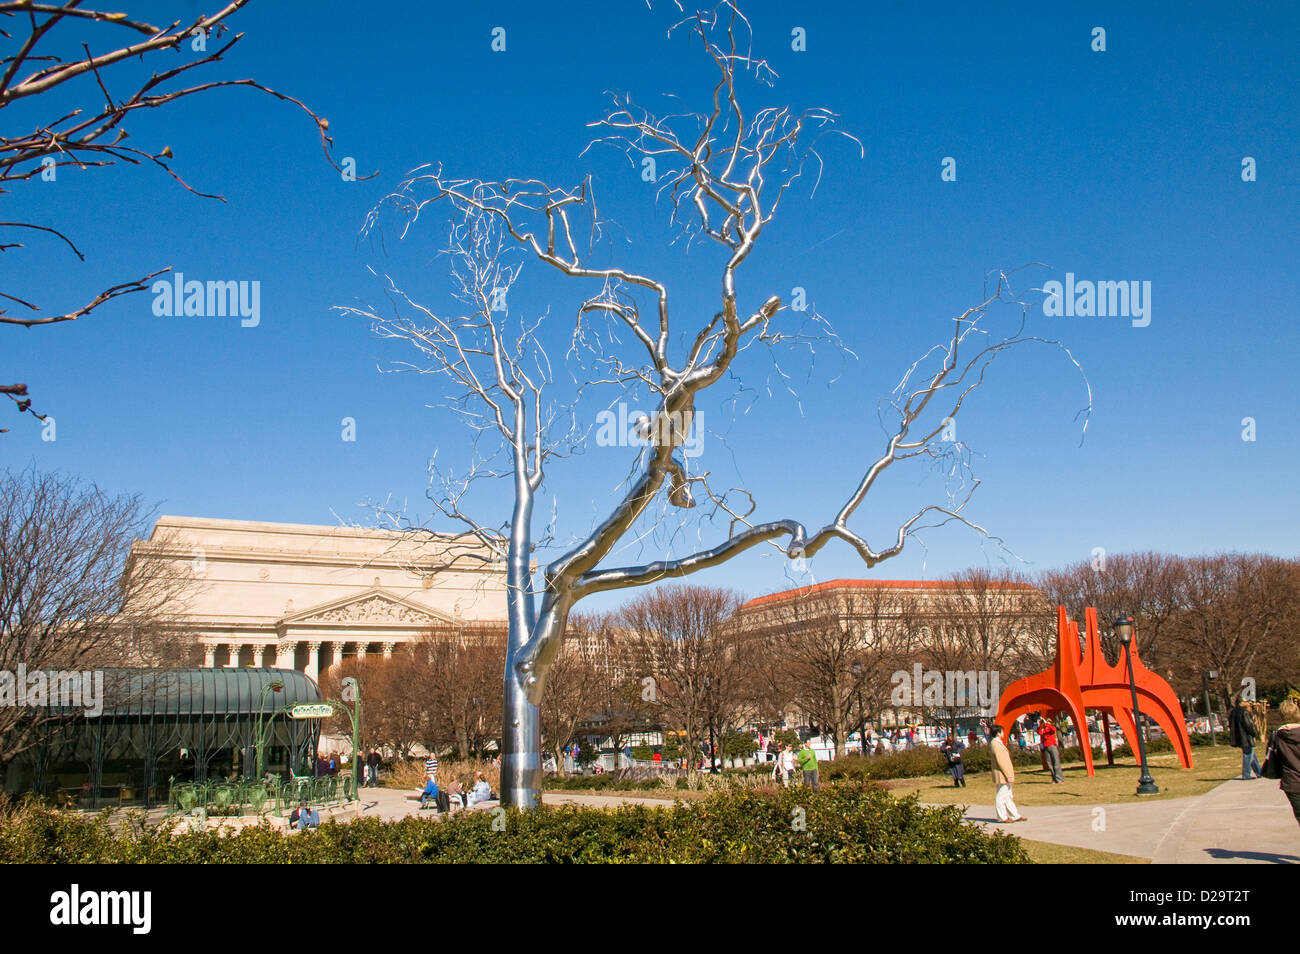 Washington D C National Gallery Art Sculpture Garden Stainless Steel Stock Photo Royalty Free